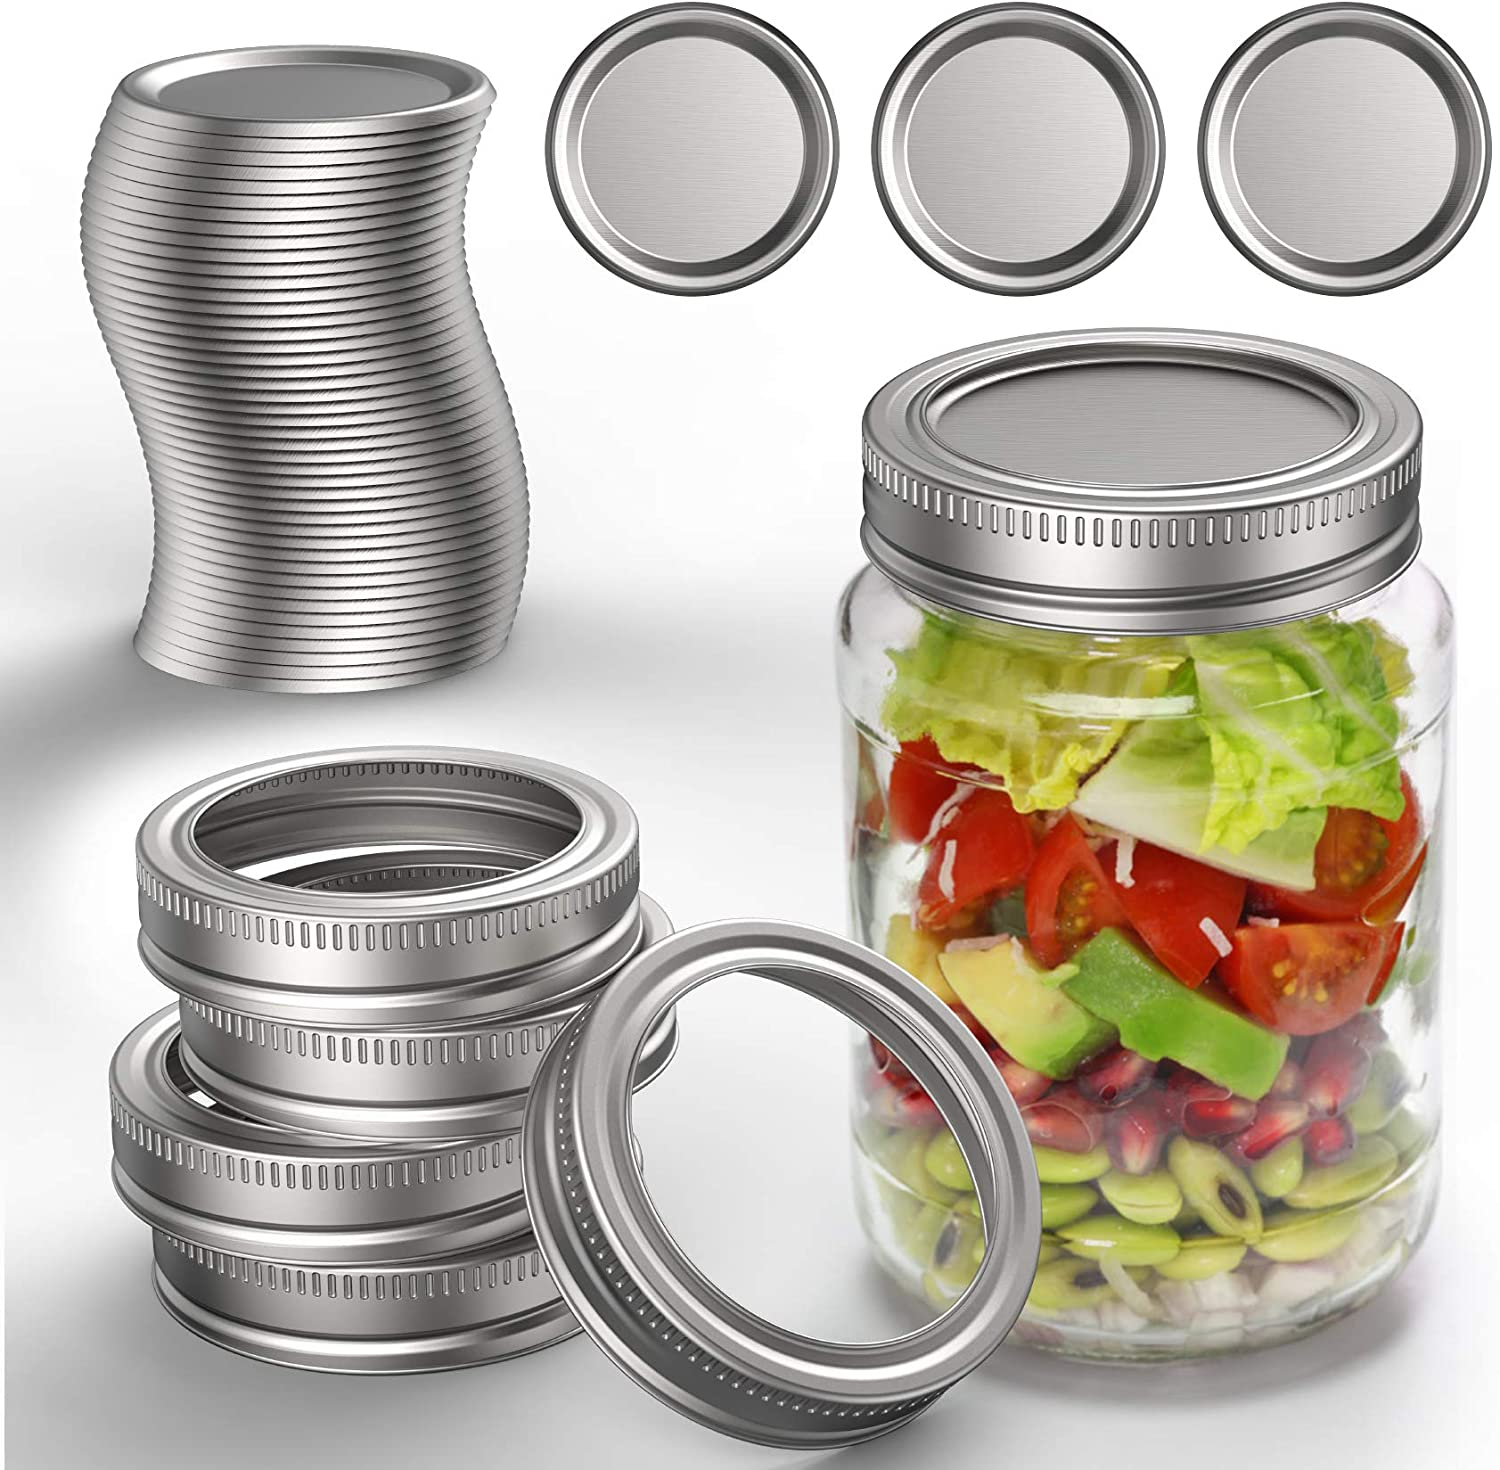 48+5 PCS Canning Lids Bands, BOIROS Regular Mouth Canning Lids Rings for Mason Jars/Ball Jars/Canning Jars, Split Leak-Proof Reusable Canning Jar Lids Caps (Jars NOT Included, 48 Lids+5 Bands) -70mm